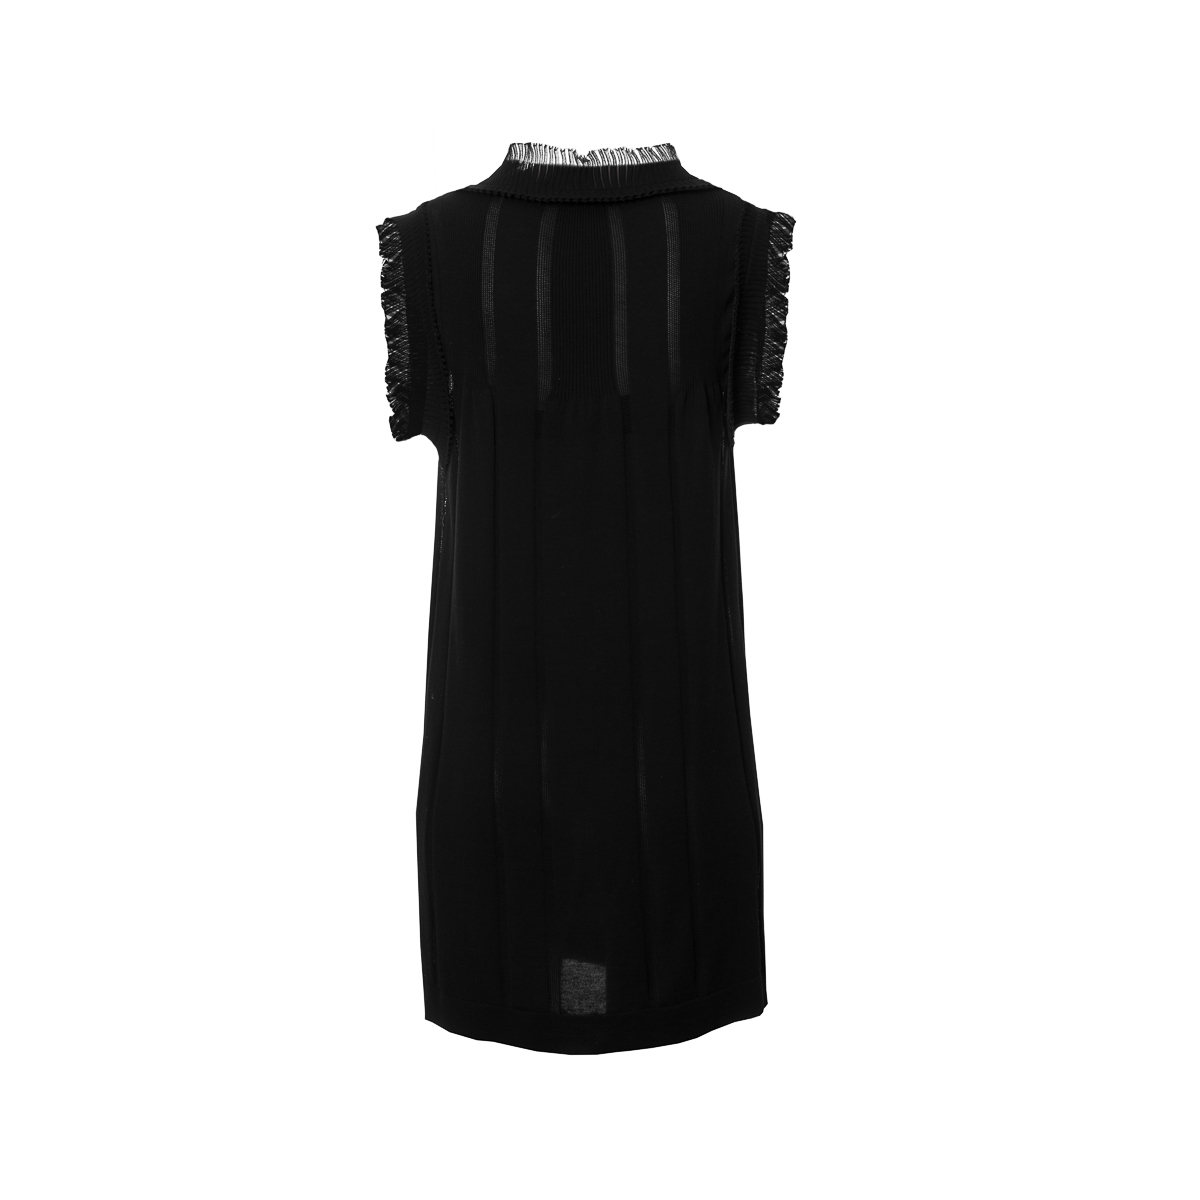 Stylish Chanel black dress, size 38